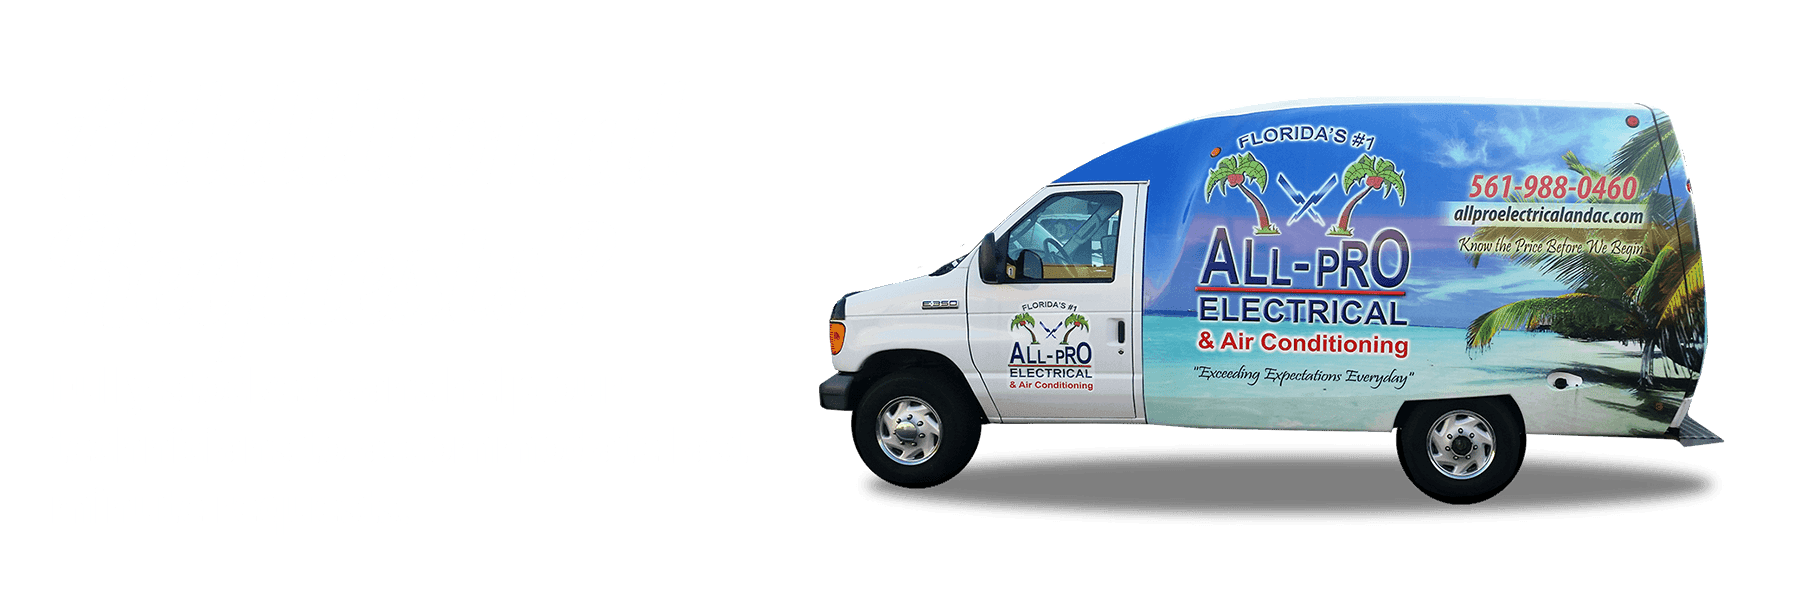 All-Pro Electrical & Air Conditioning Boca Raton Florida AC